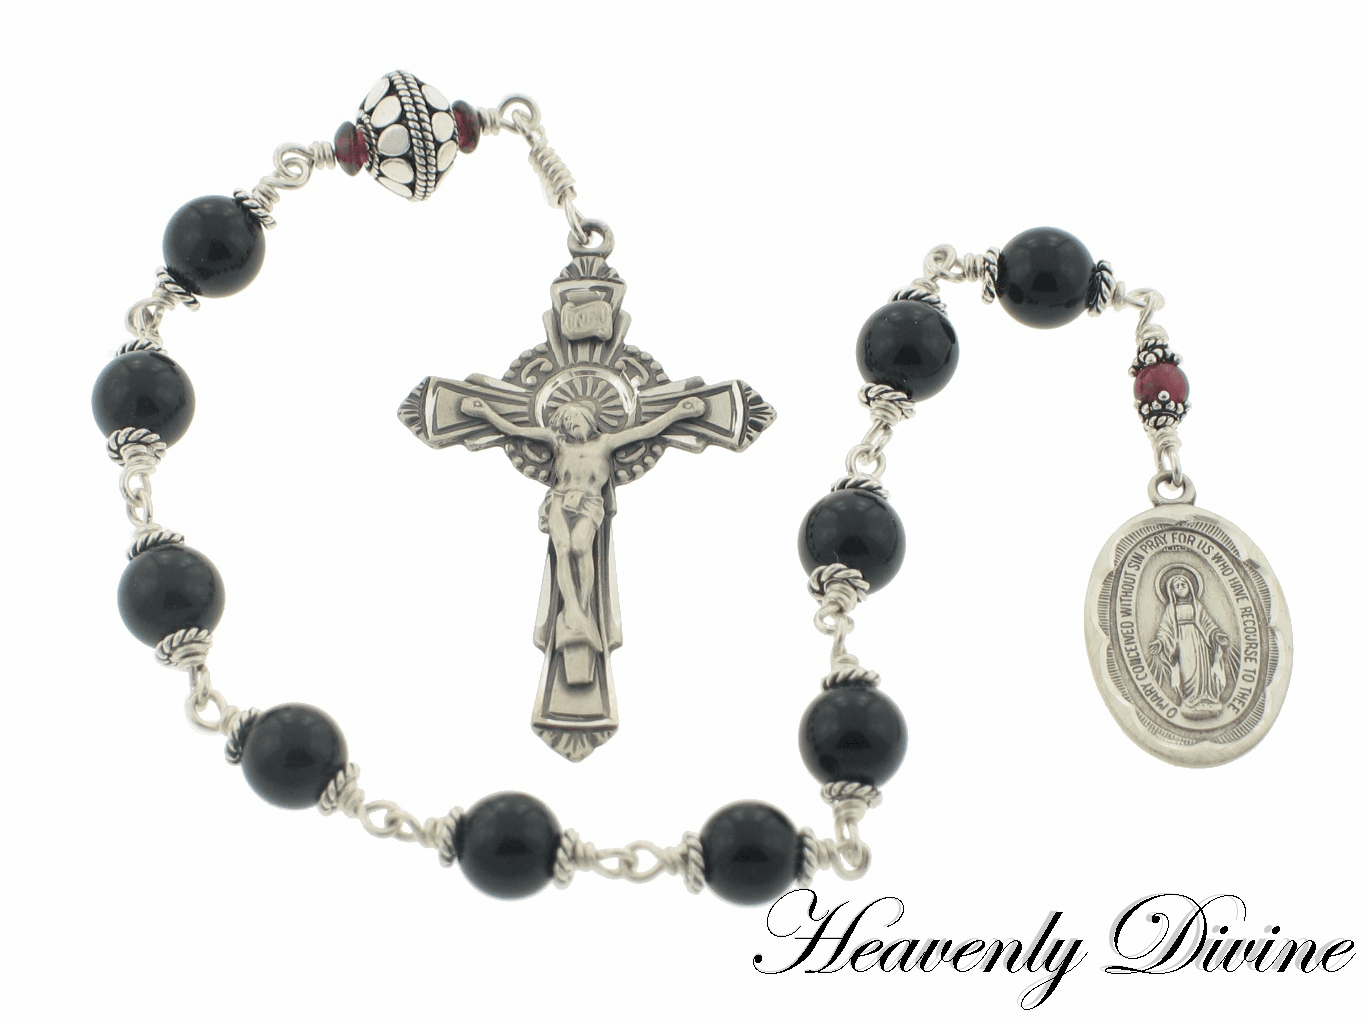 Black Onyx & Garnet One Decade Rosary by Heavenly Divine